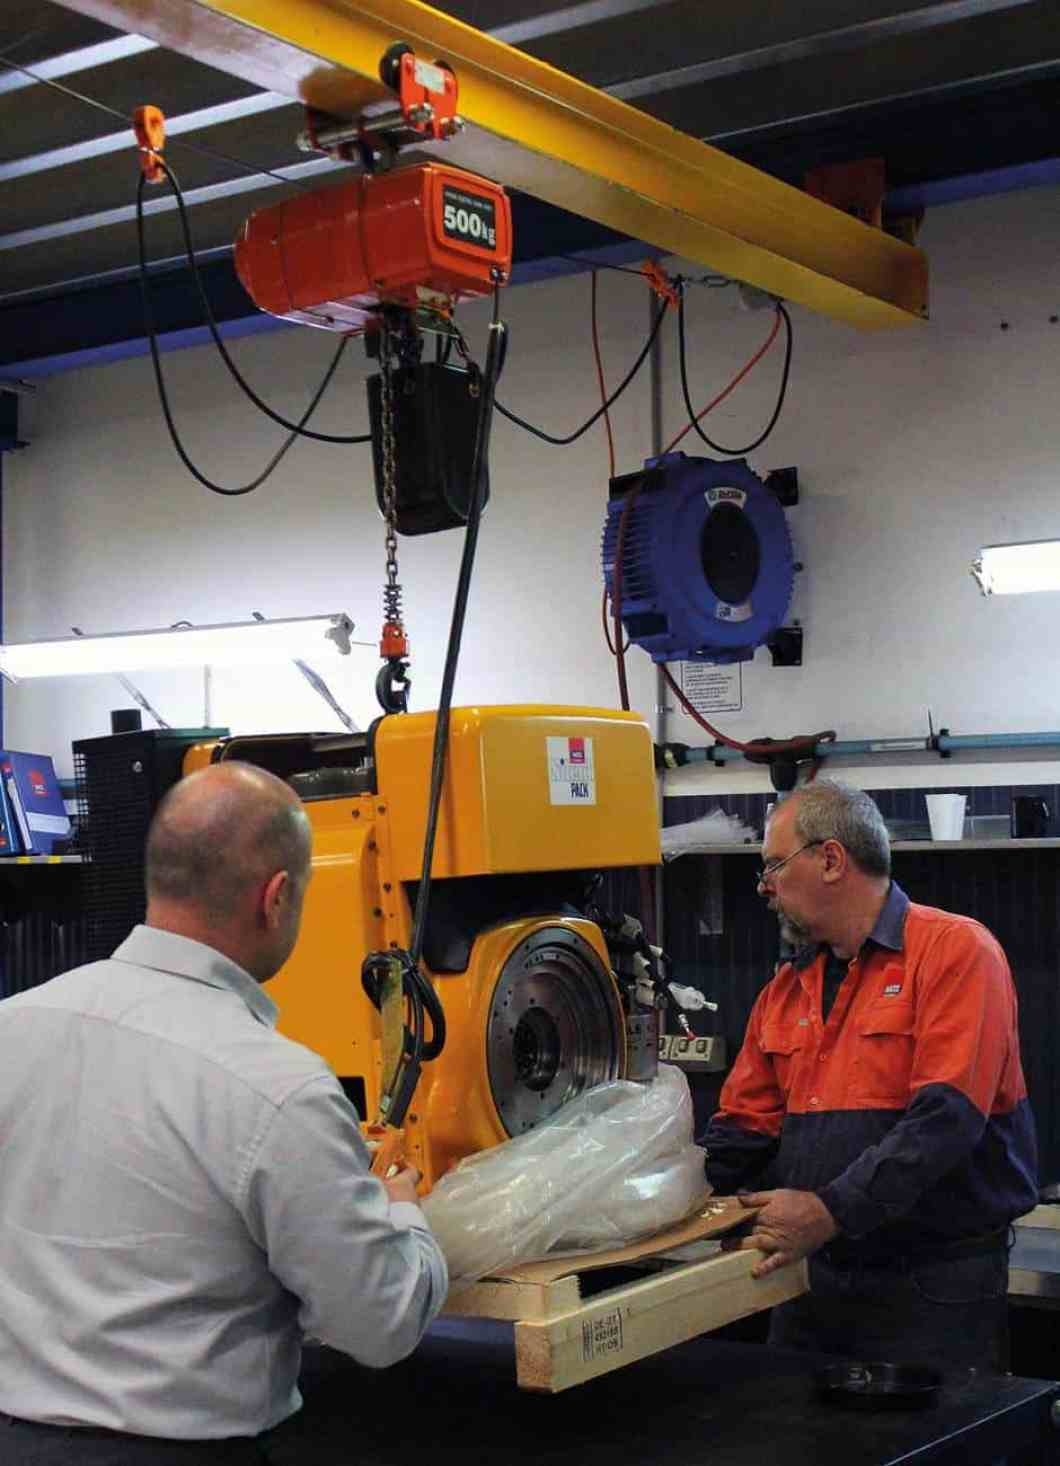 All Hatz Diesel engines are run-tested before they are sent to customers so they are ready to install when they arrive.